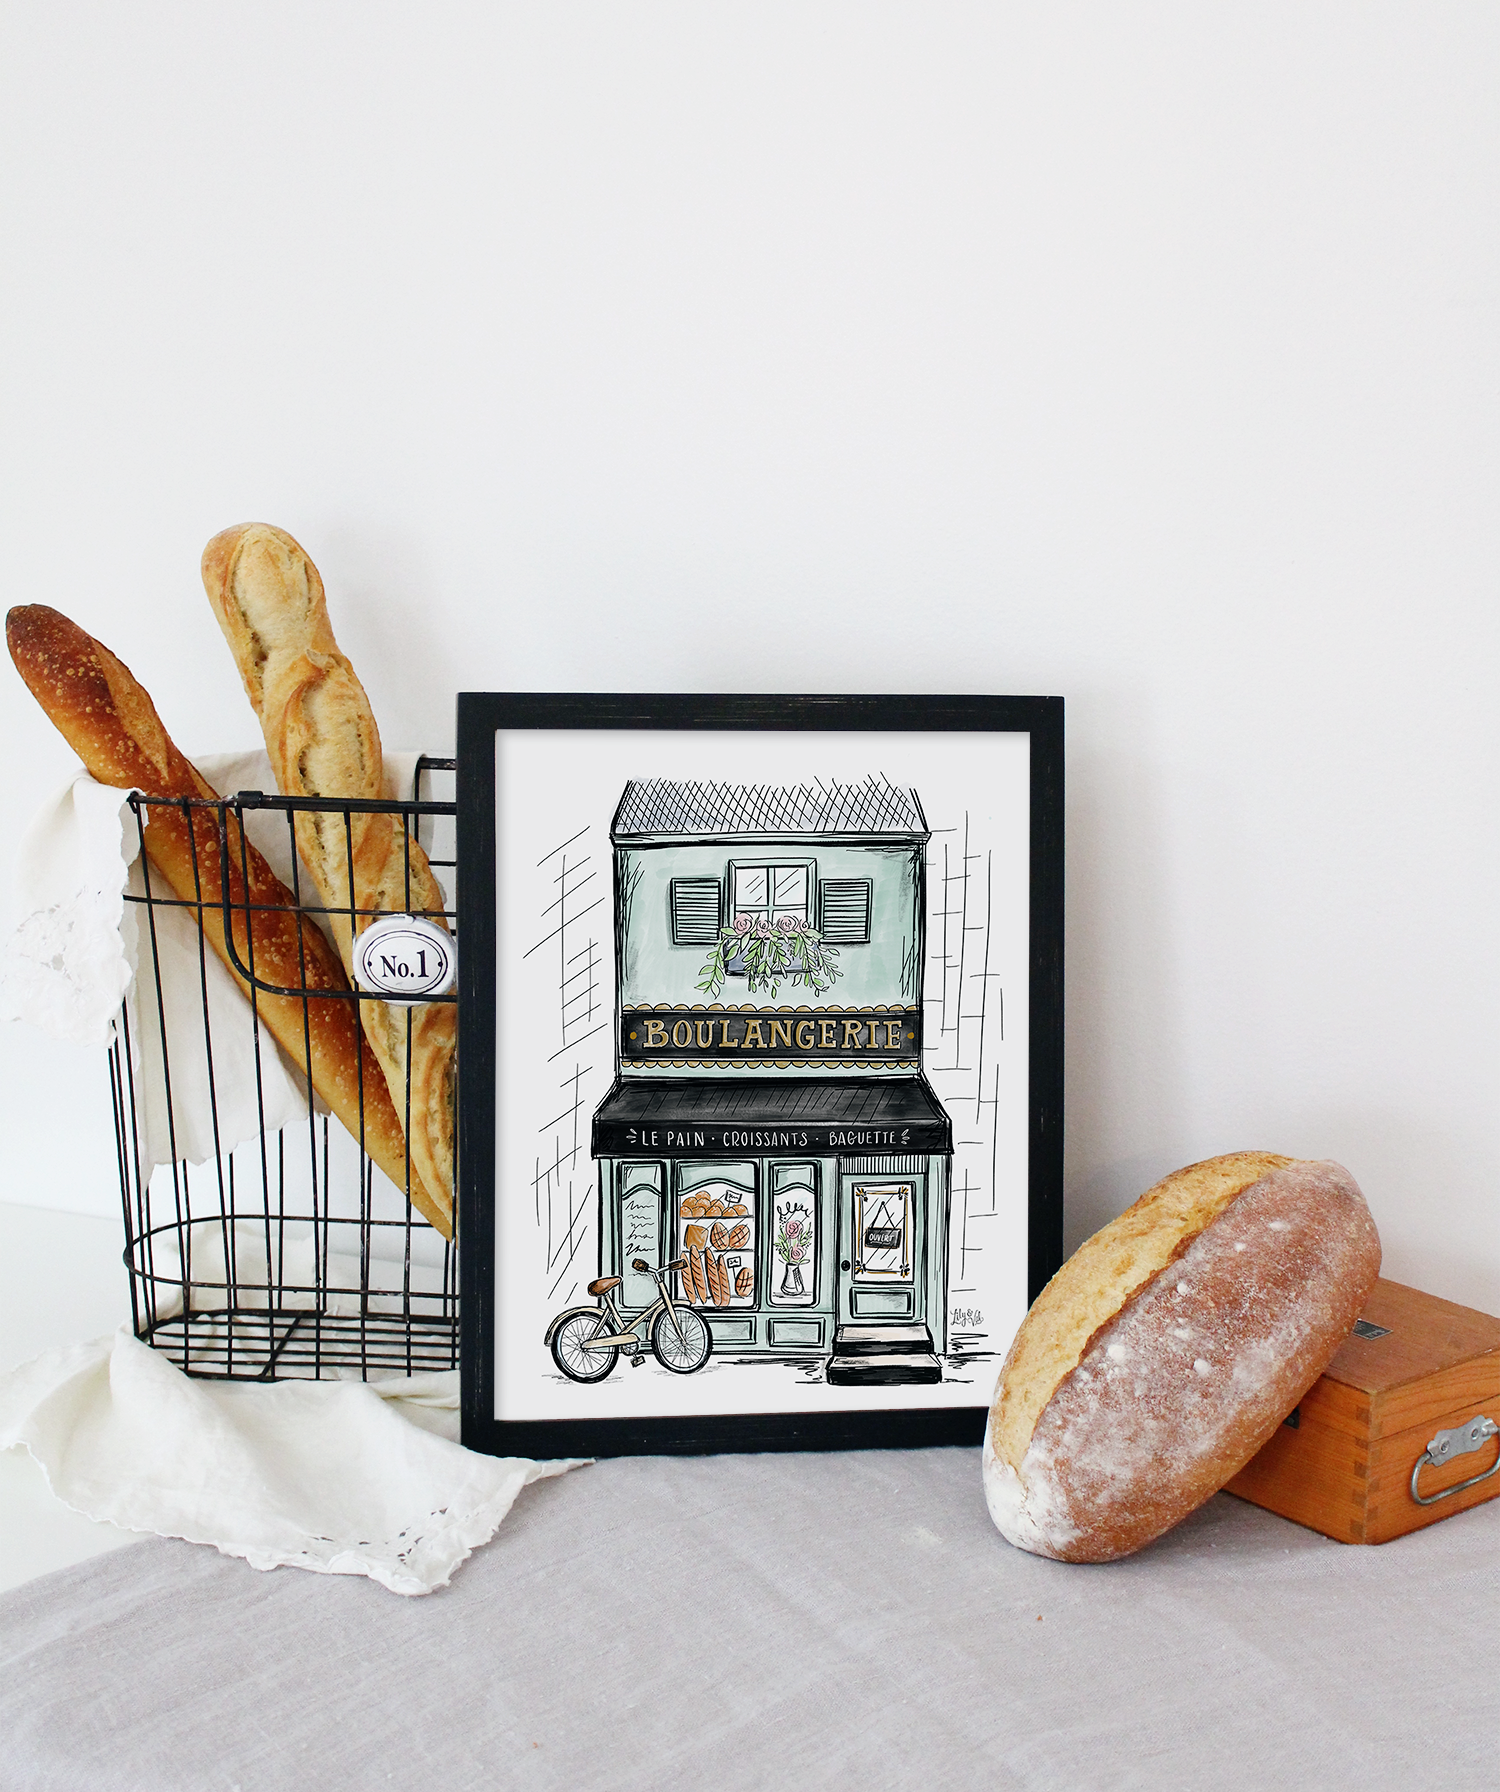 Hand illustrated French Boulangerie storefront as part of The Lily & Val Spring in Provence Collection